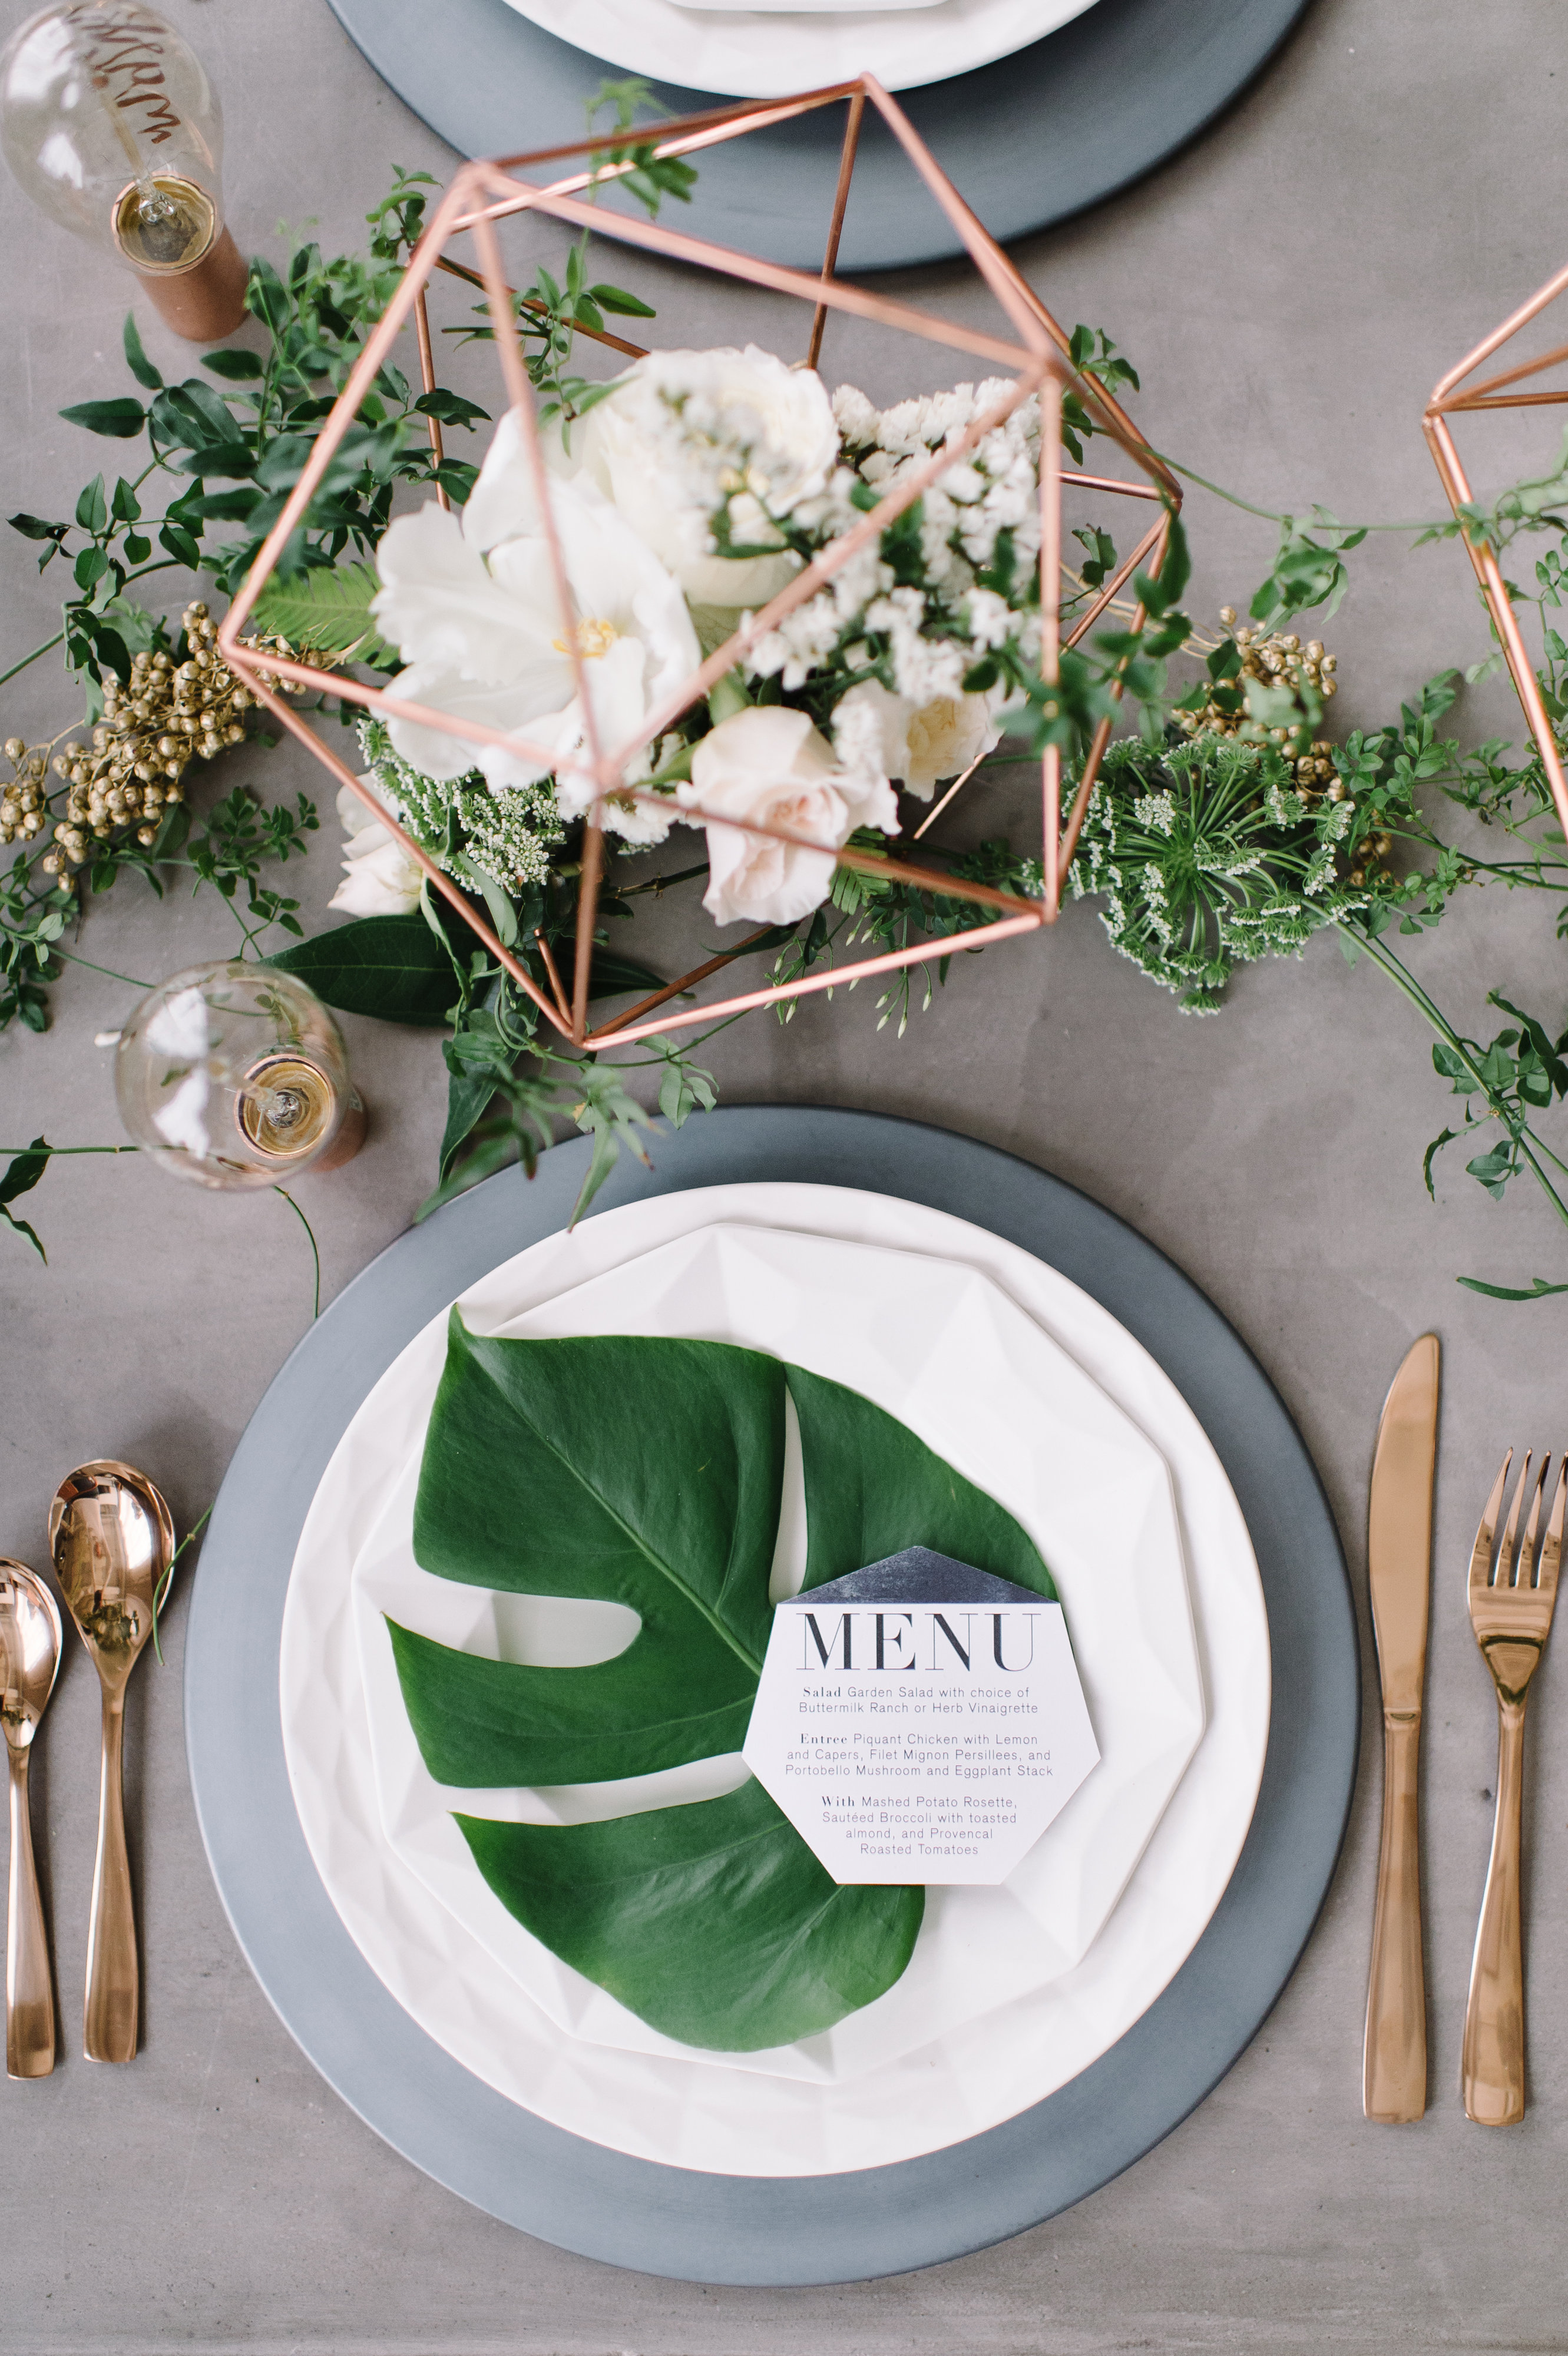 Place Setting with Tropical Palm Leaf on Plate